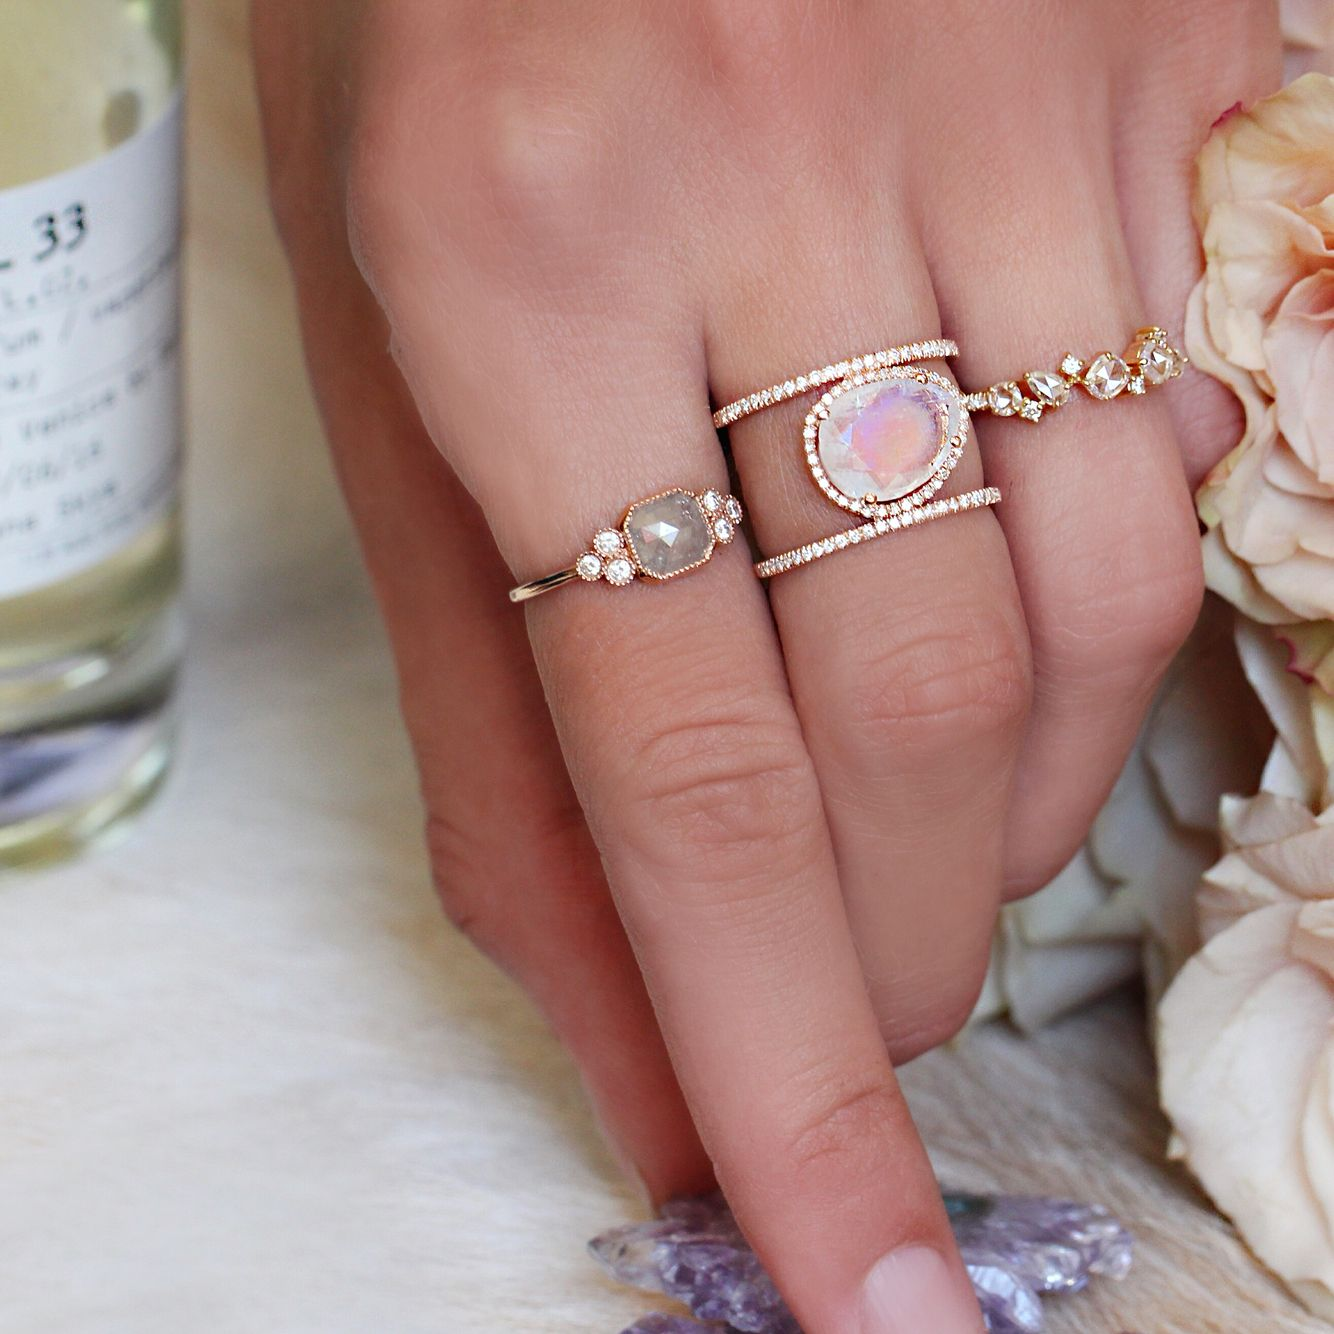 cosmeticaholic.com 】 | Rings | Pinterest | Jewel, Ring and Bling